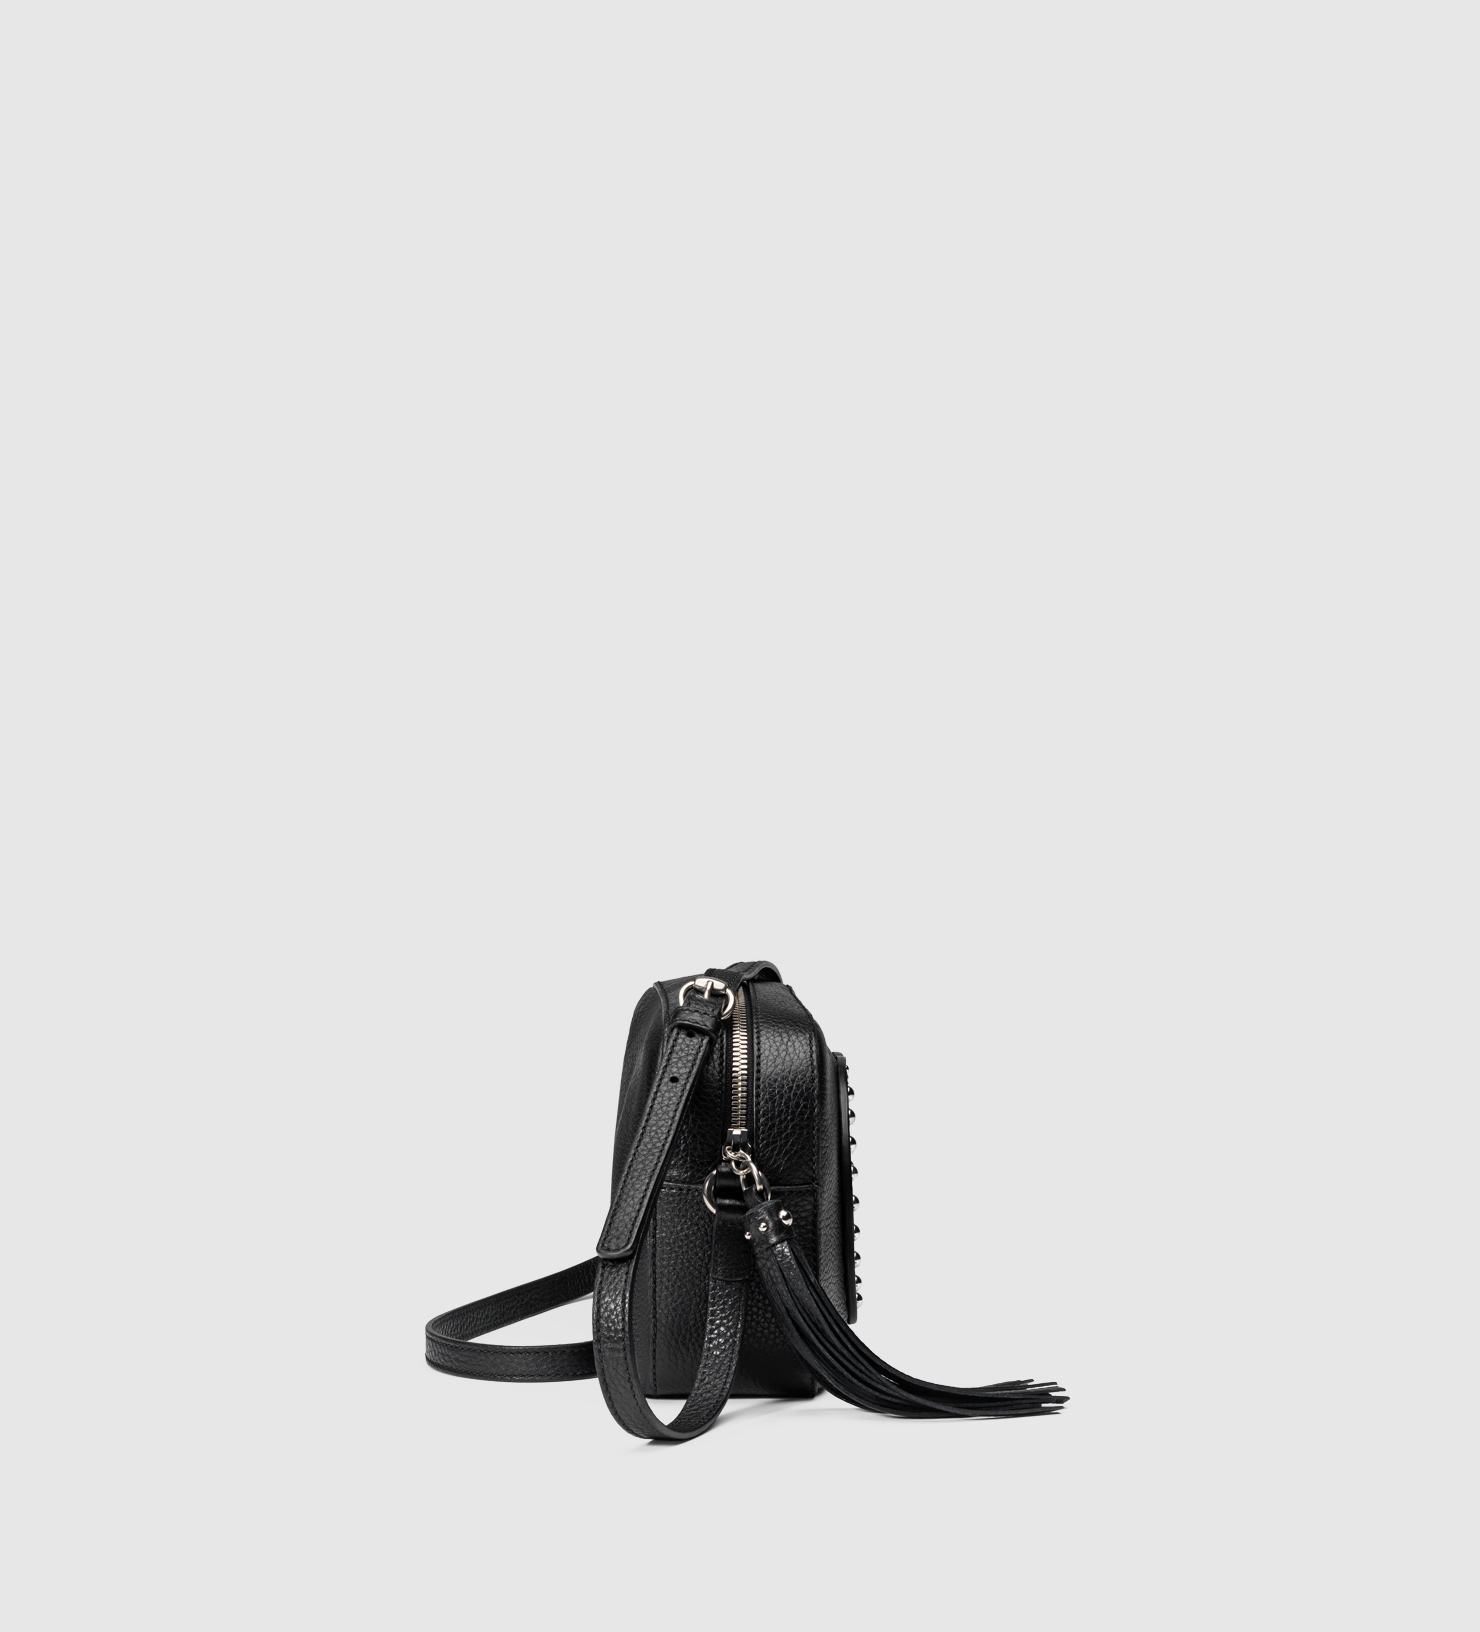 6c6b7a42b1be Gucci Soho Studded Leather Disco Bag in Black - Lyst